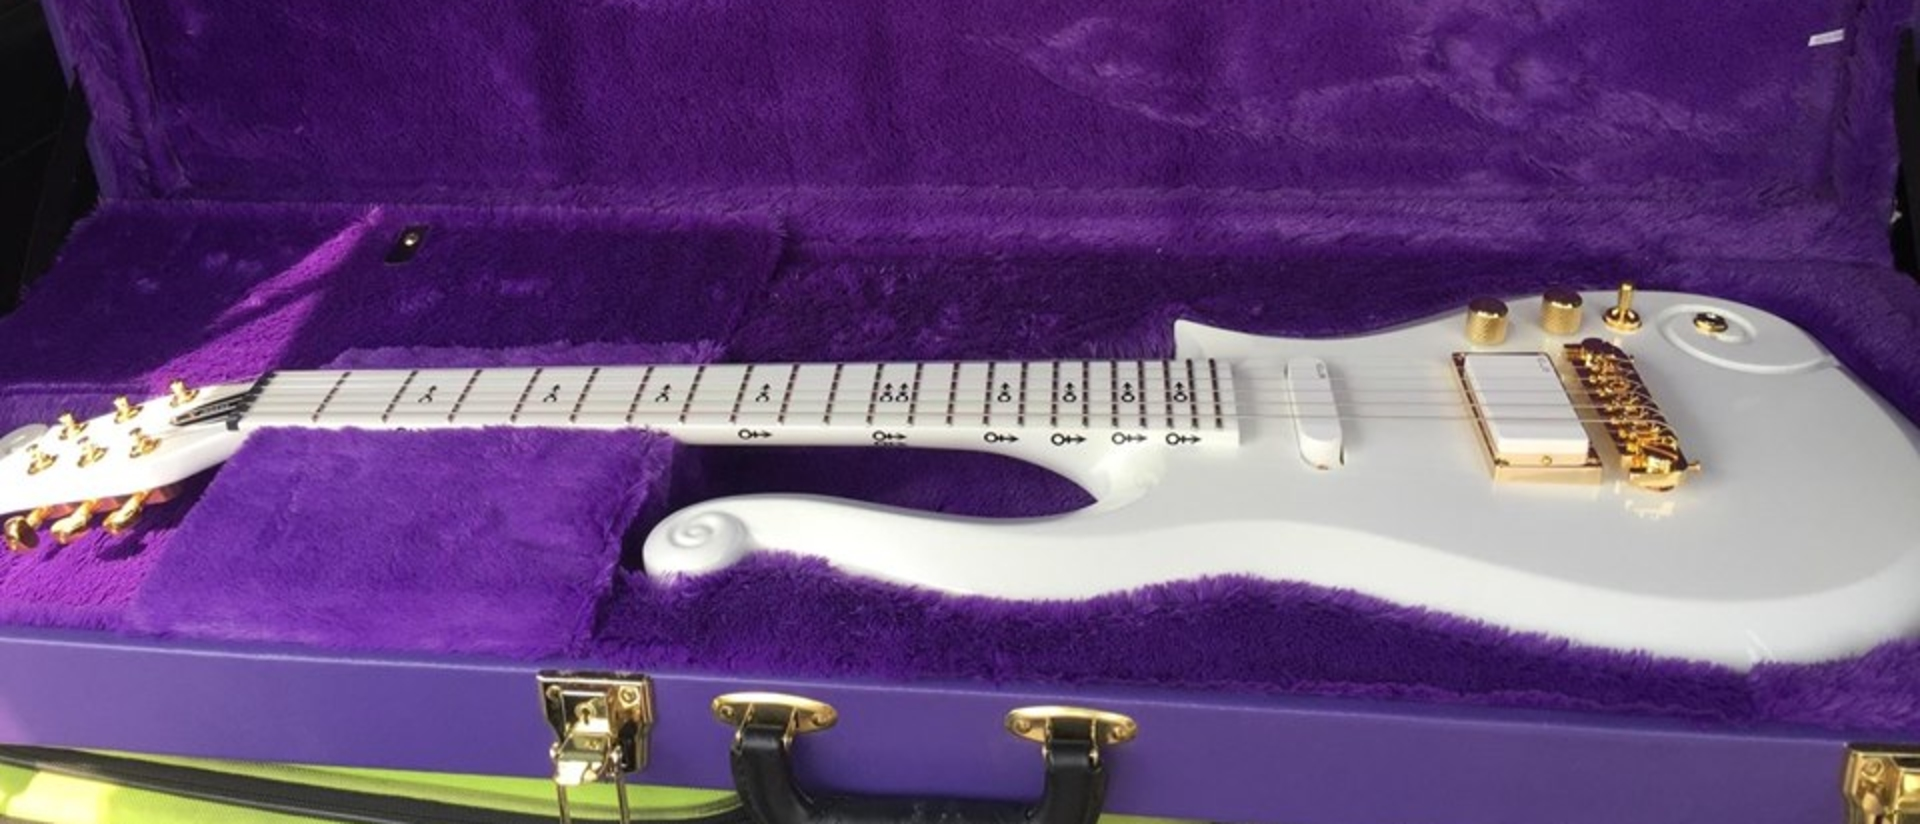 A guitar from the collection of the late superstar Prince.